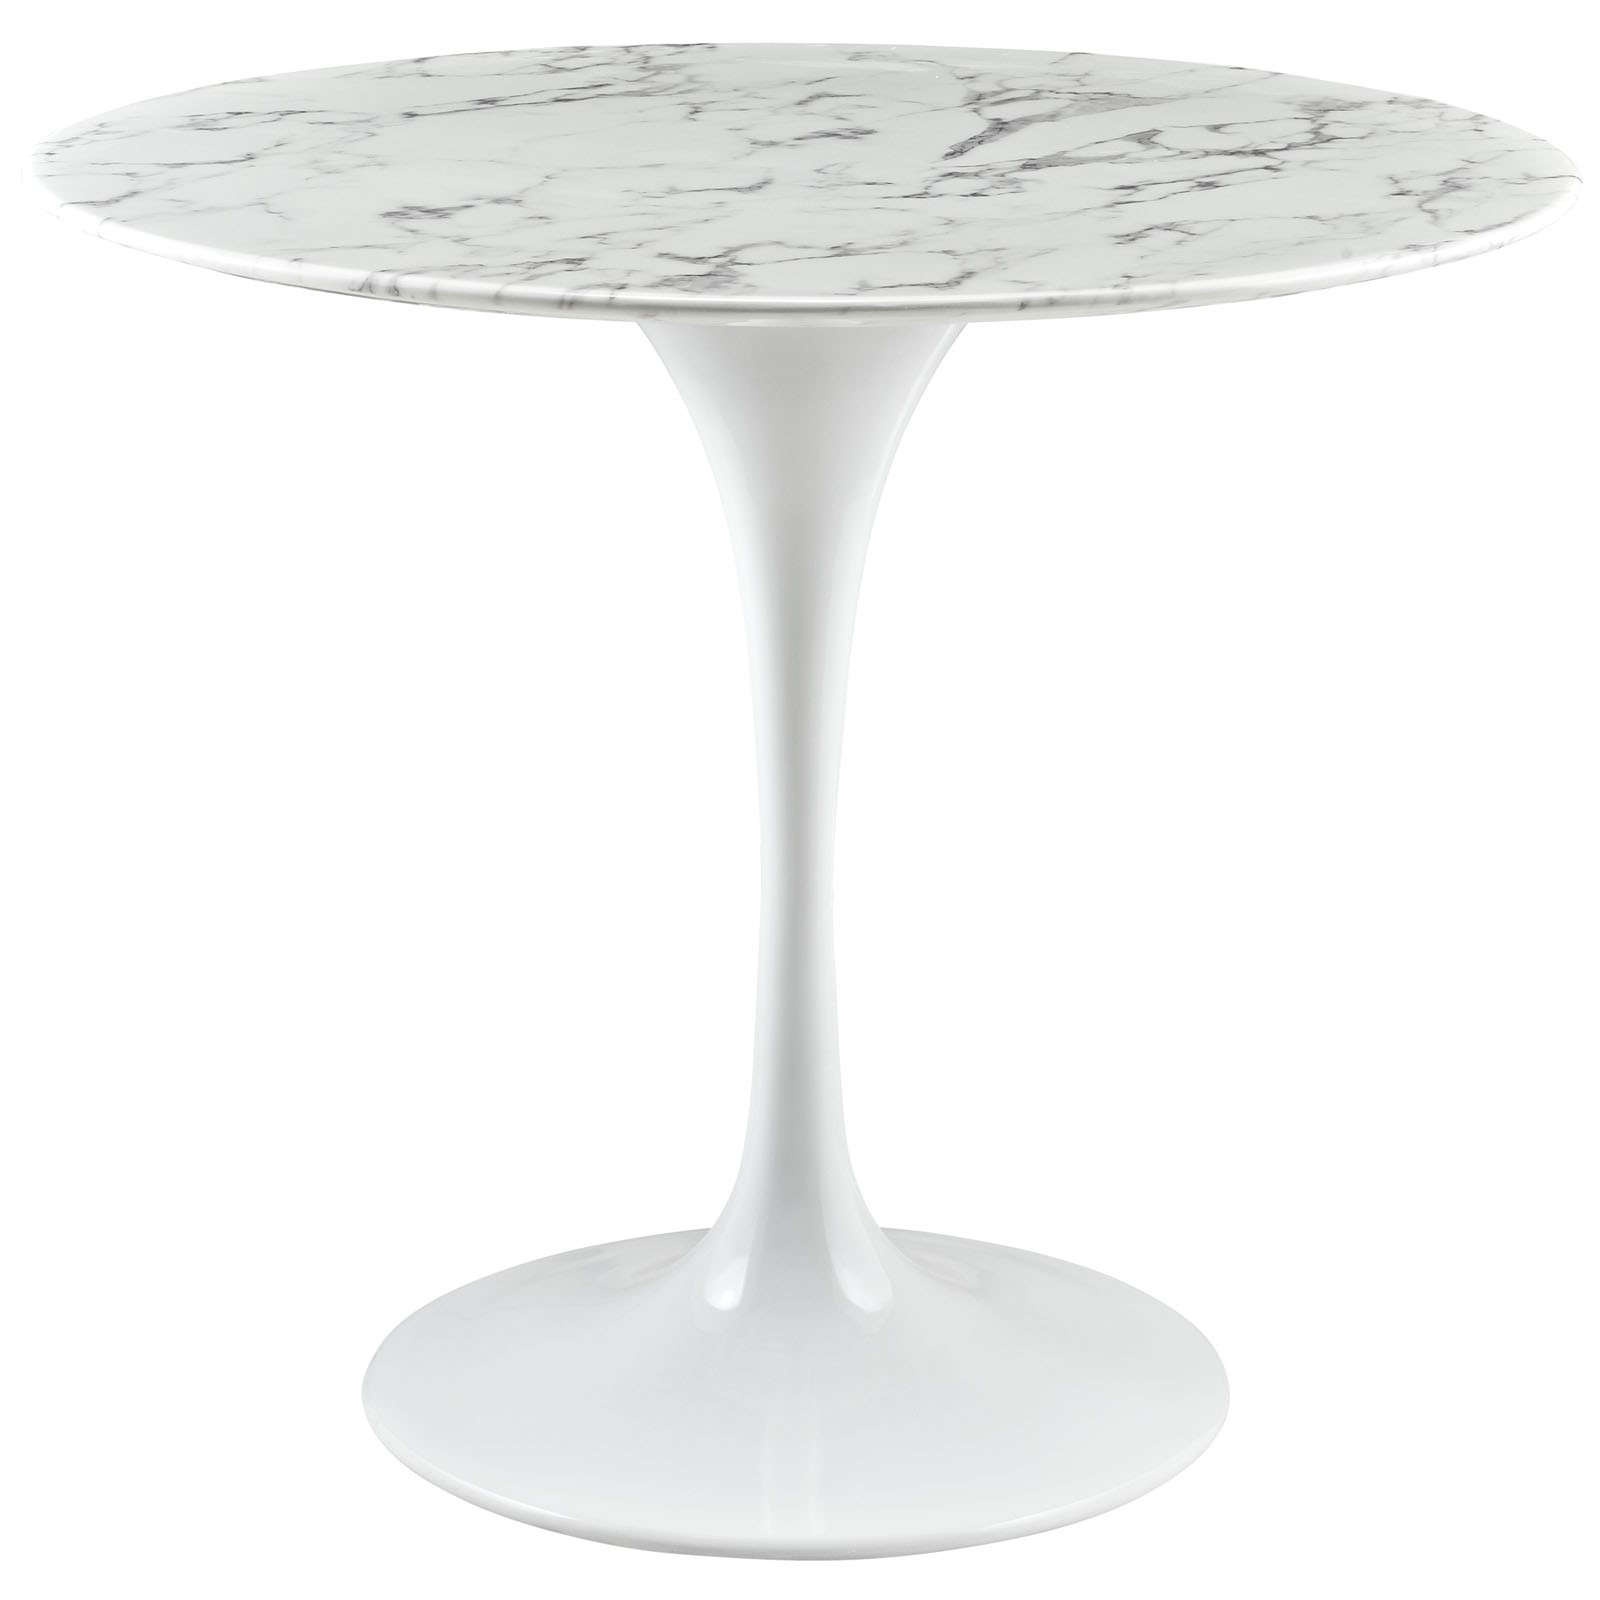 Lippa White 36 Inch Round Artificial Marble Dining Table Eei 1129 Whi 1stopbedrooms